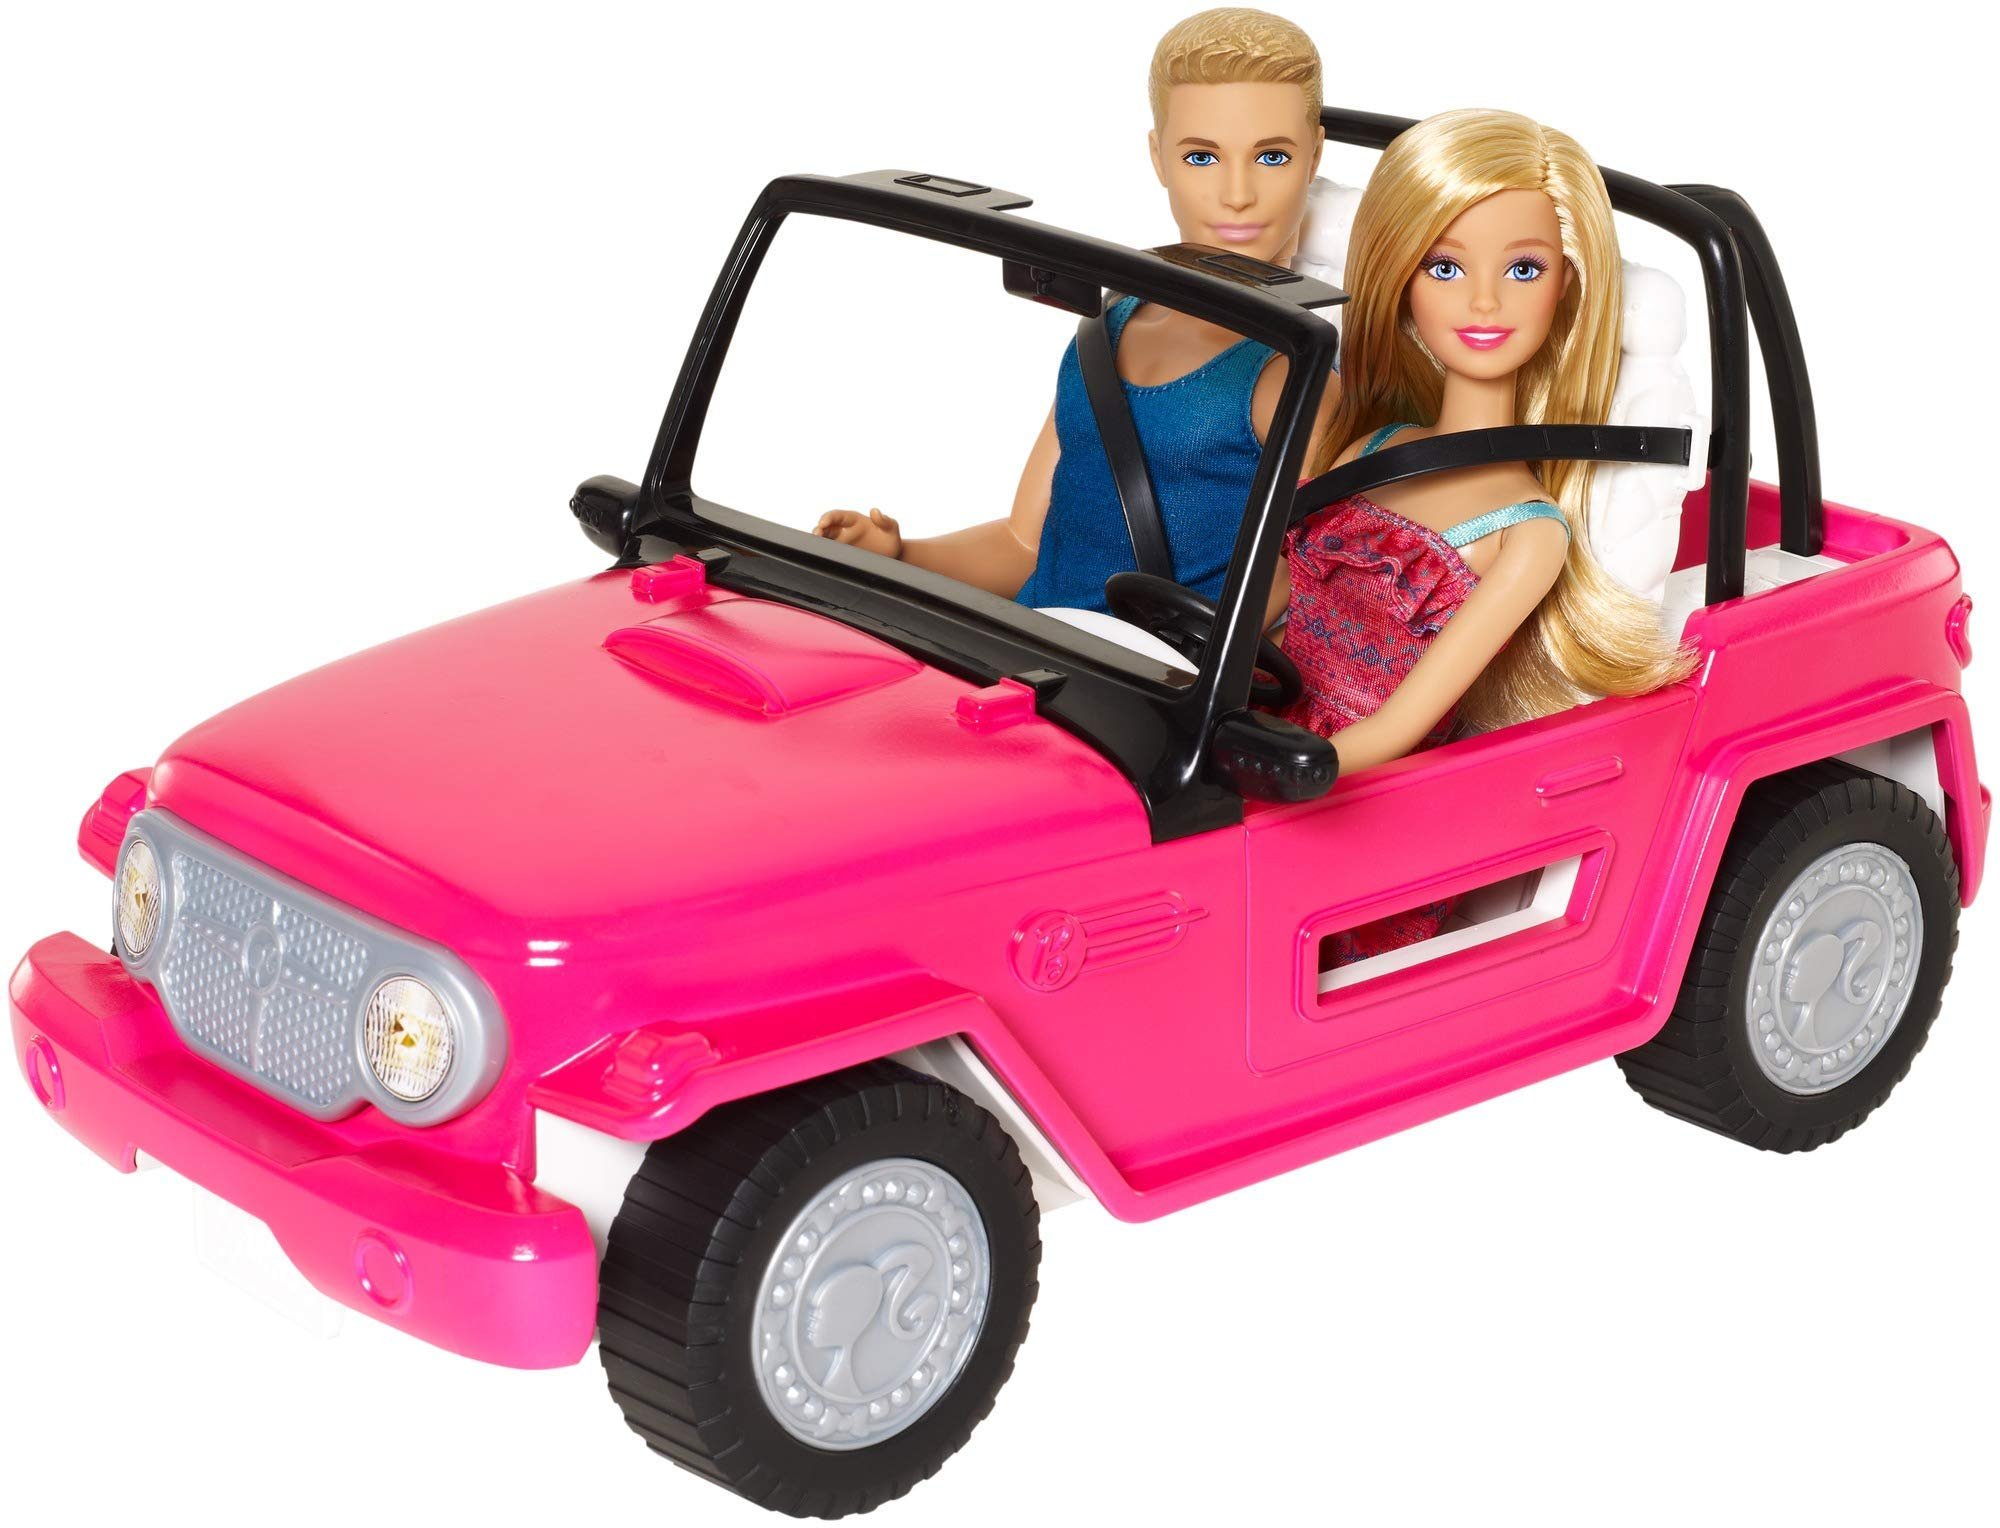 Barbie Beach Cruiser Barbie Doll and Ken Doll [Amazon Exclusive]